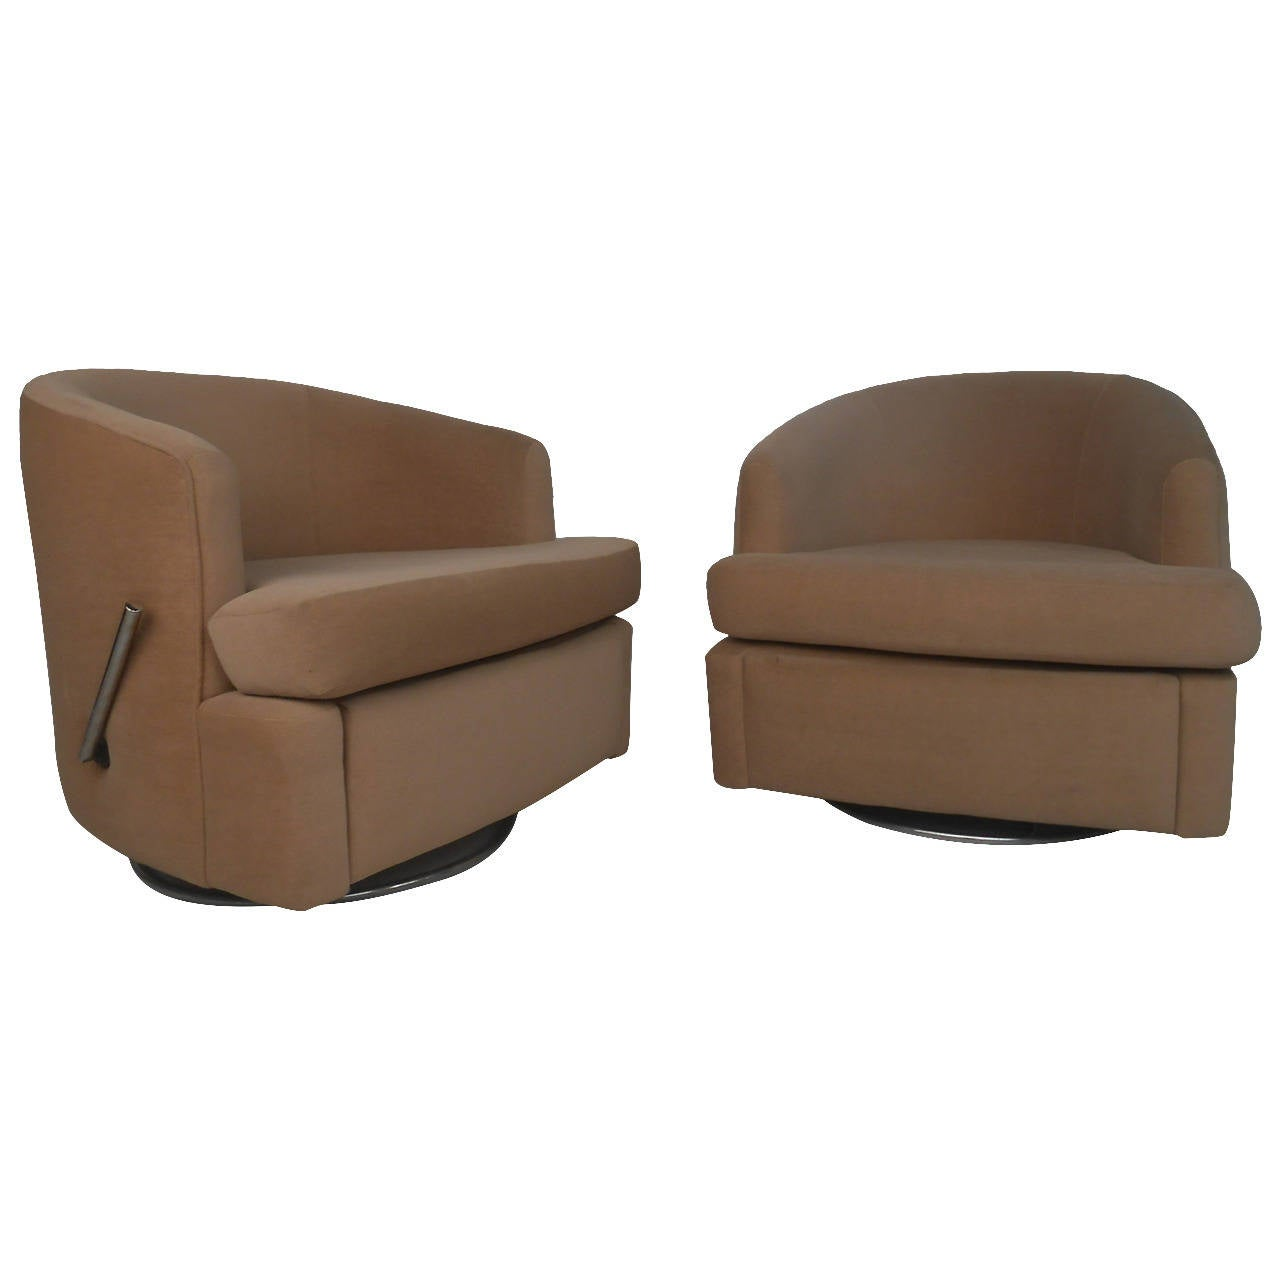 zac swivel chair toys r us chairs for toddlers thayer coggin barrel at 1stdibs